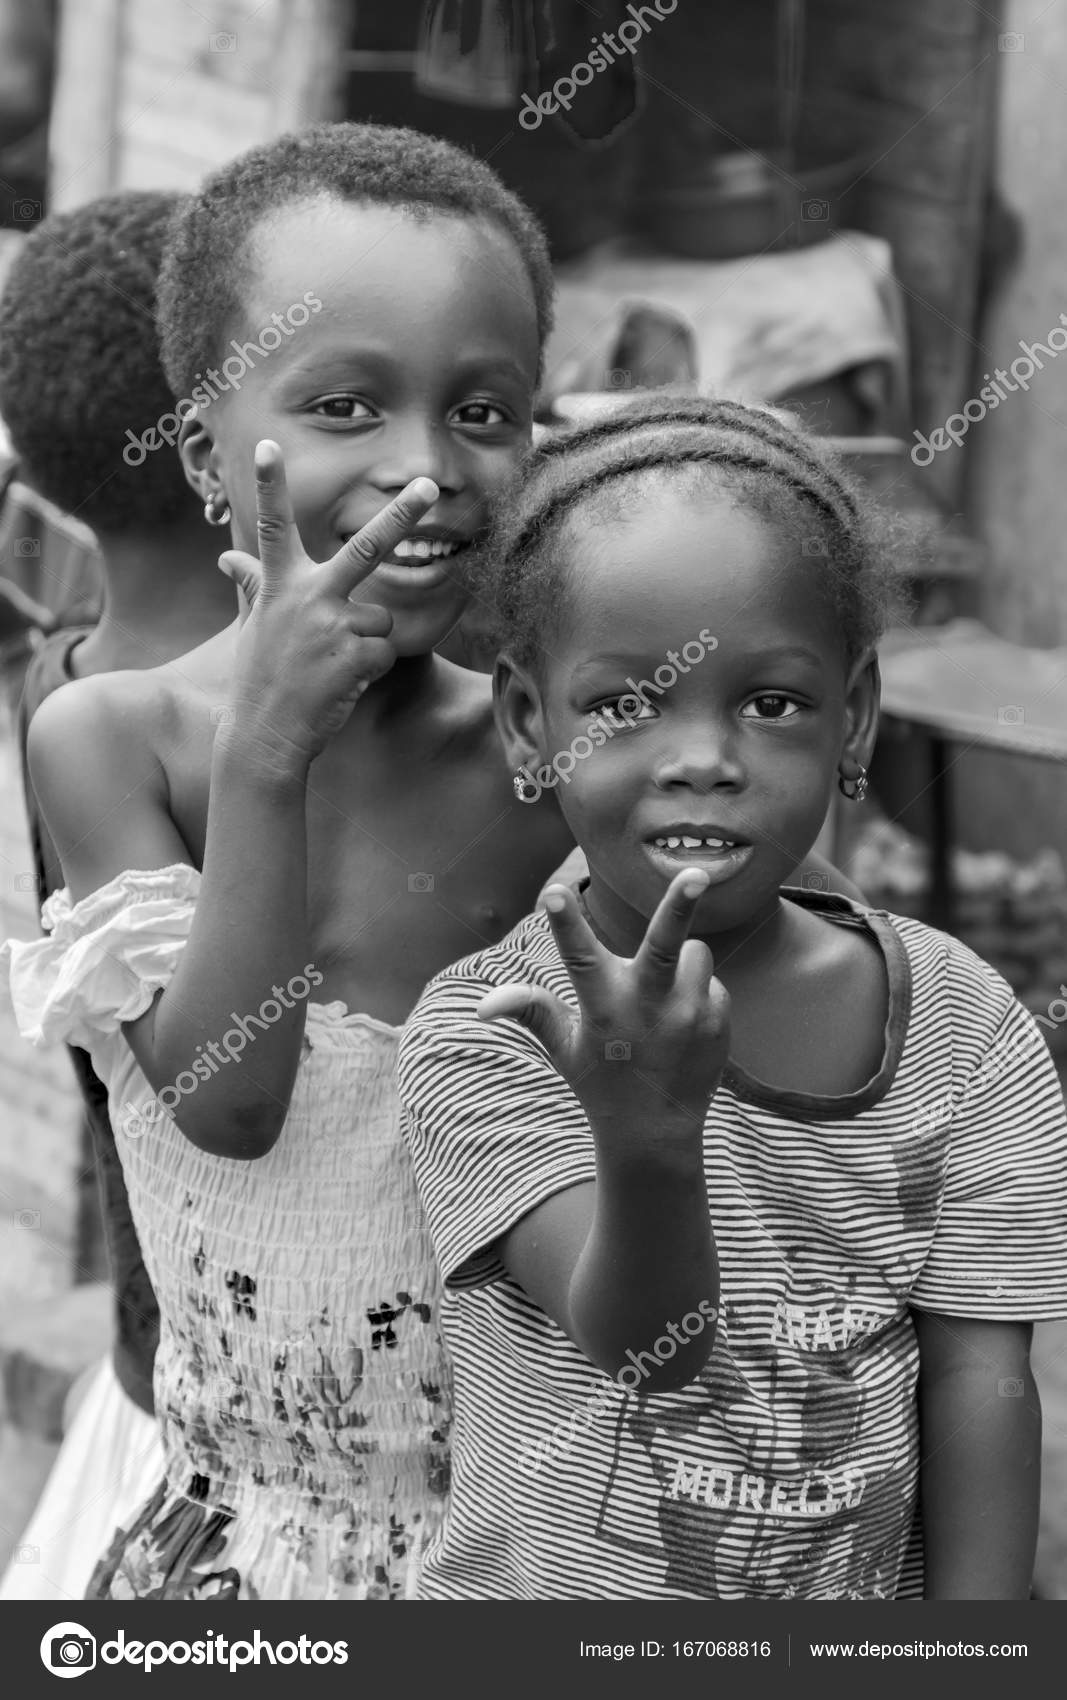 Accra ghana december 28 2016 happy children in a street in accra ghana photo by tizianella